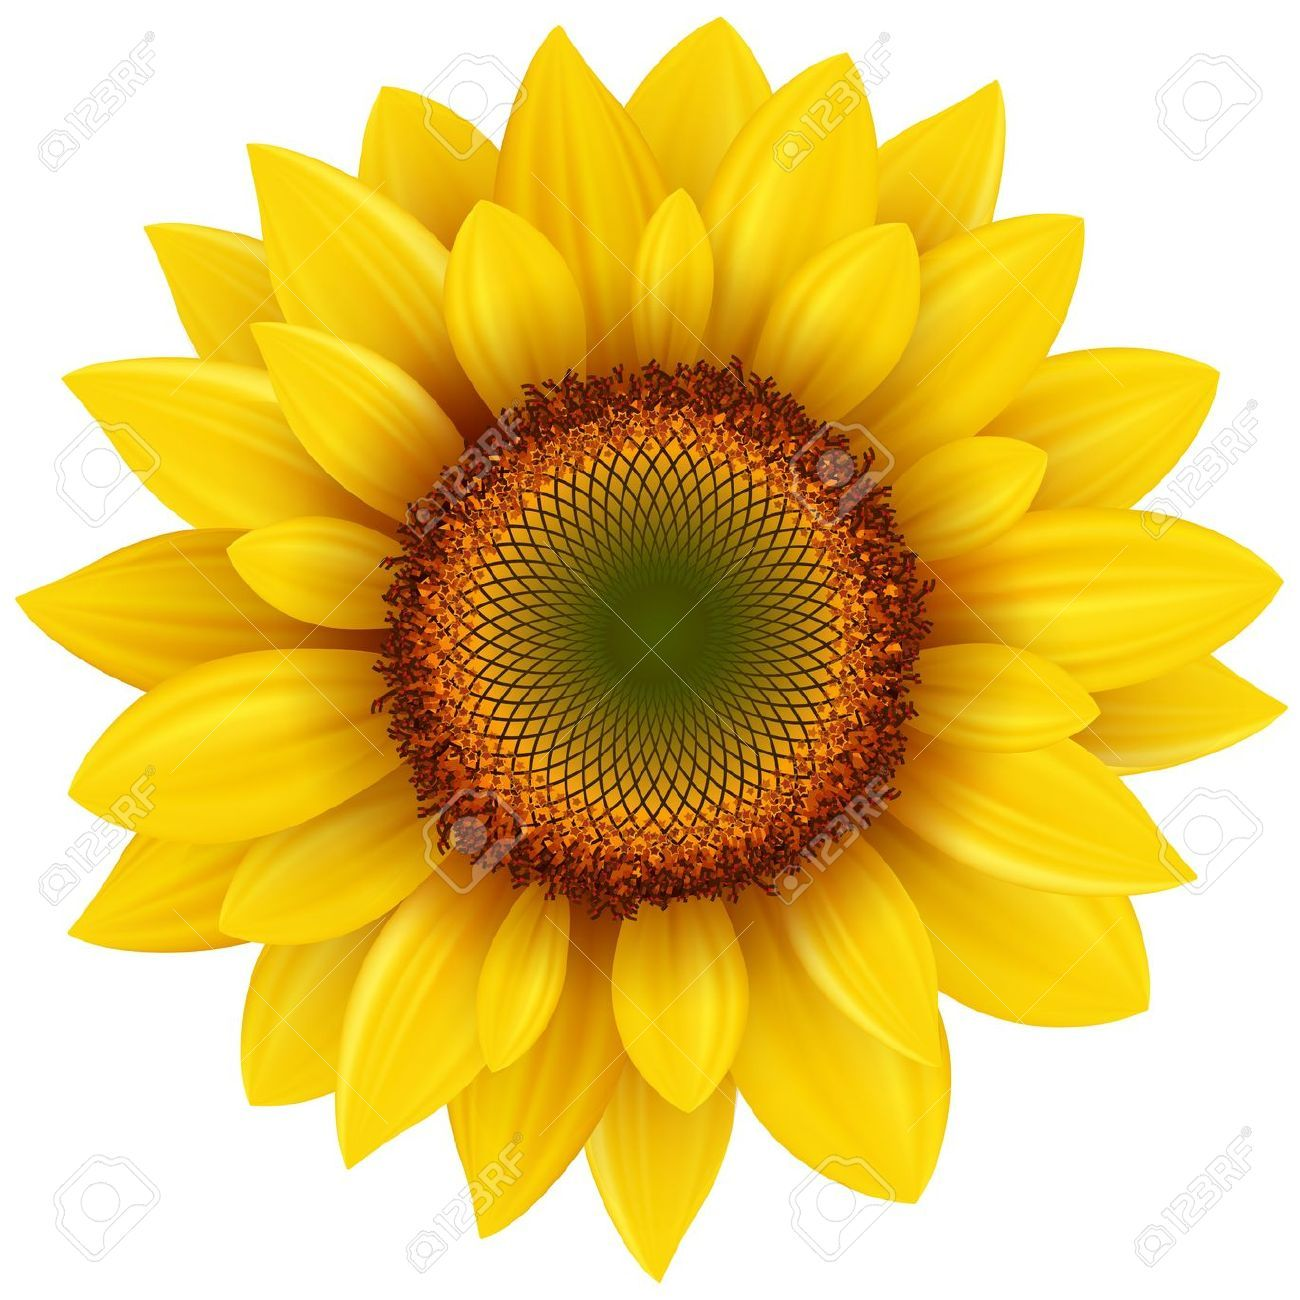 Sunflower clipart realistic pictures on Cliparts Pub 2020! 🔝